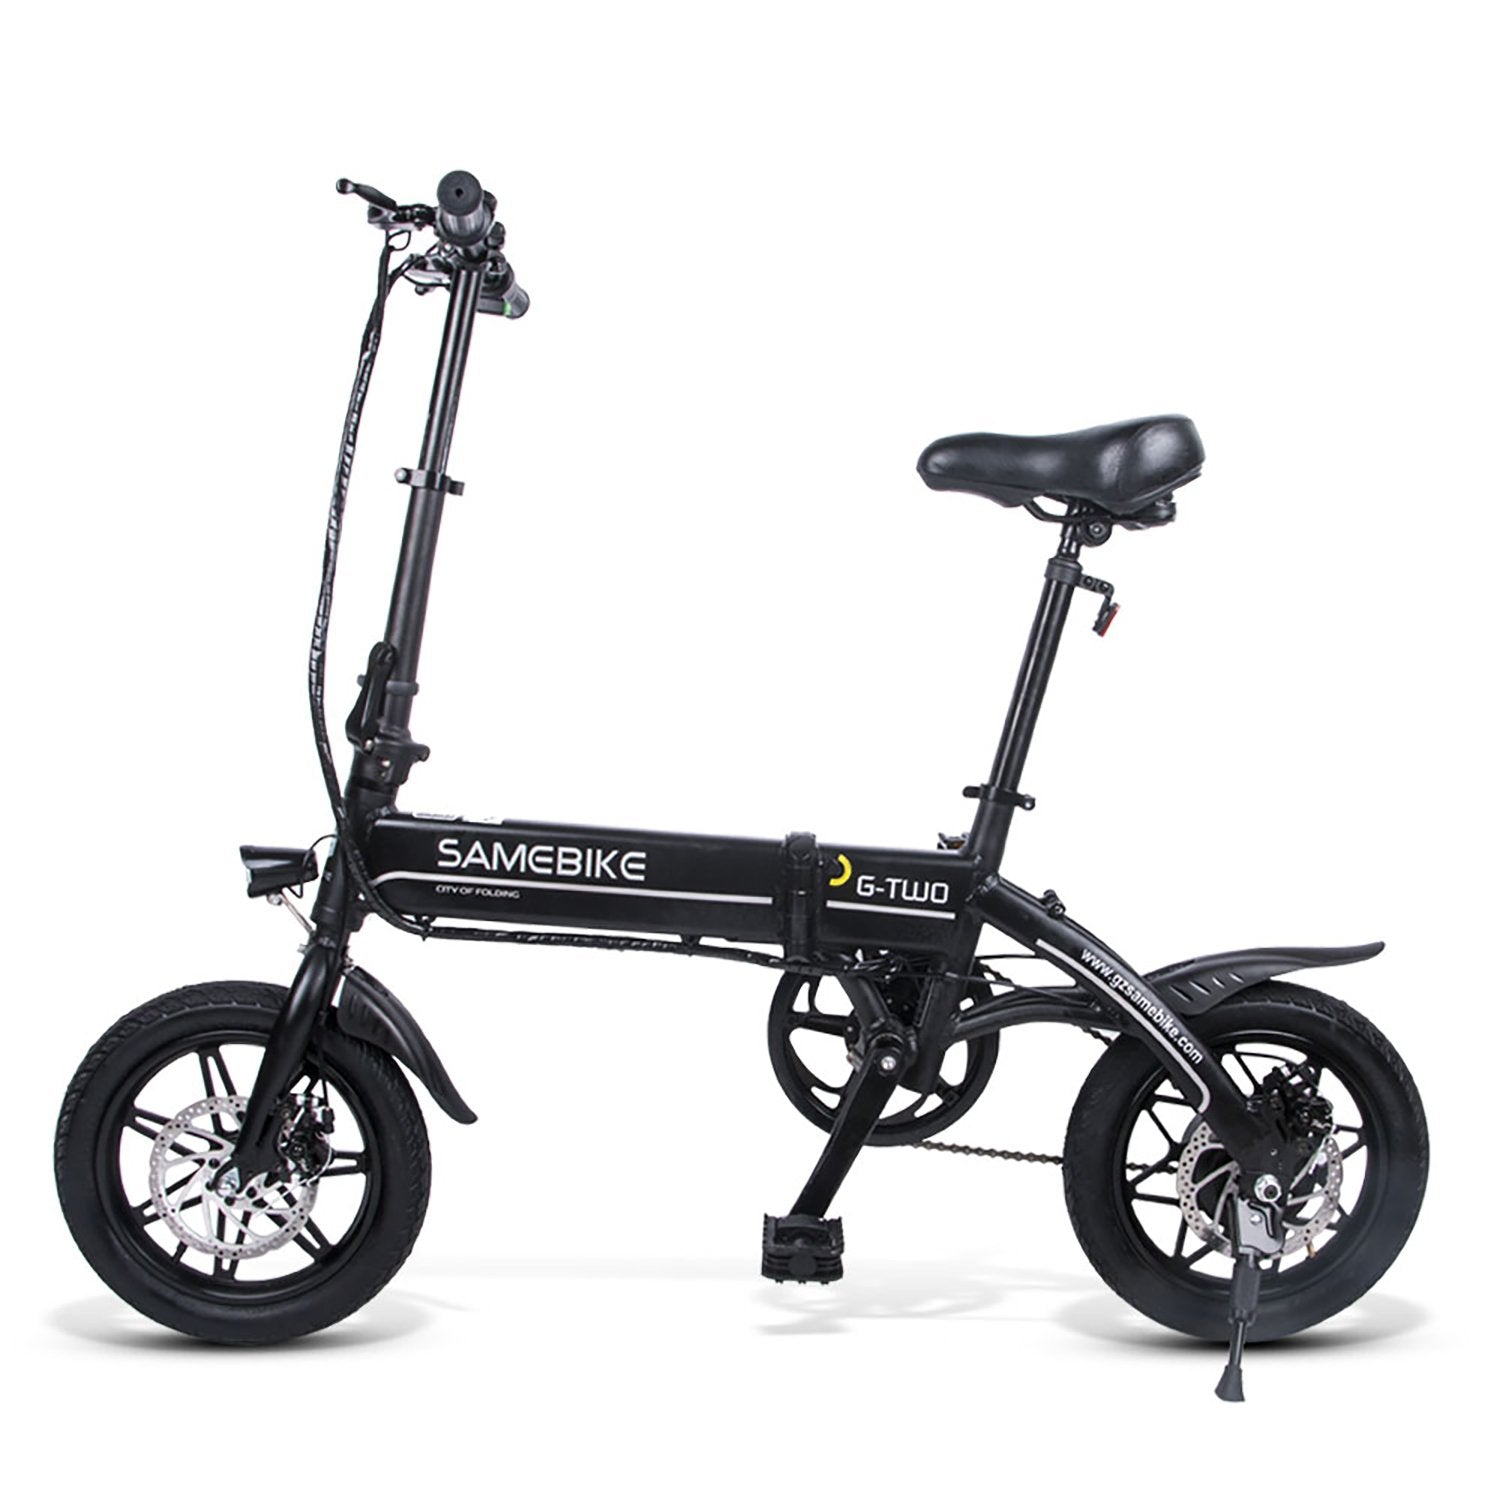 SAMEBIKE YINYU14 Folding Electric Bike 14 Inch Tires 250W Motor 8Ah Battery Max 25 KPH